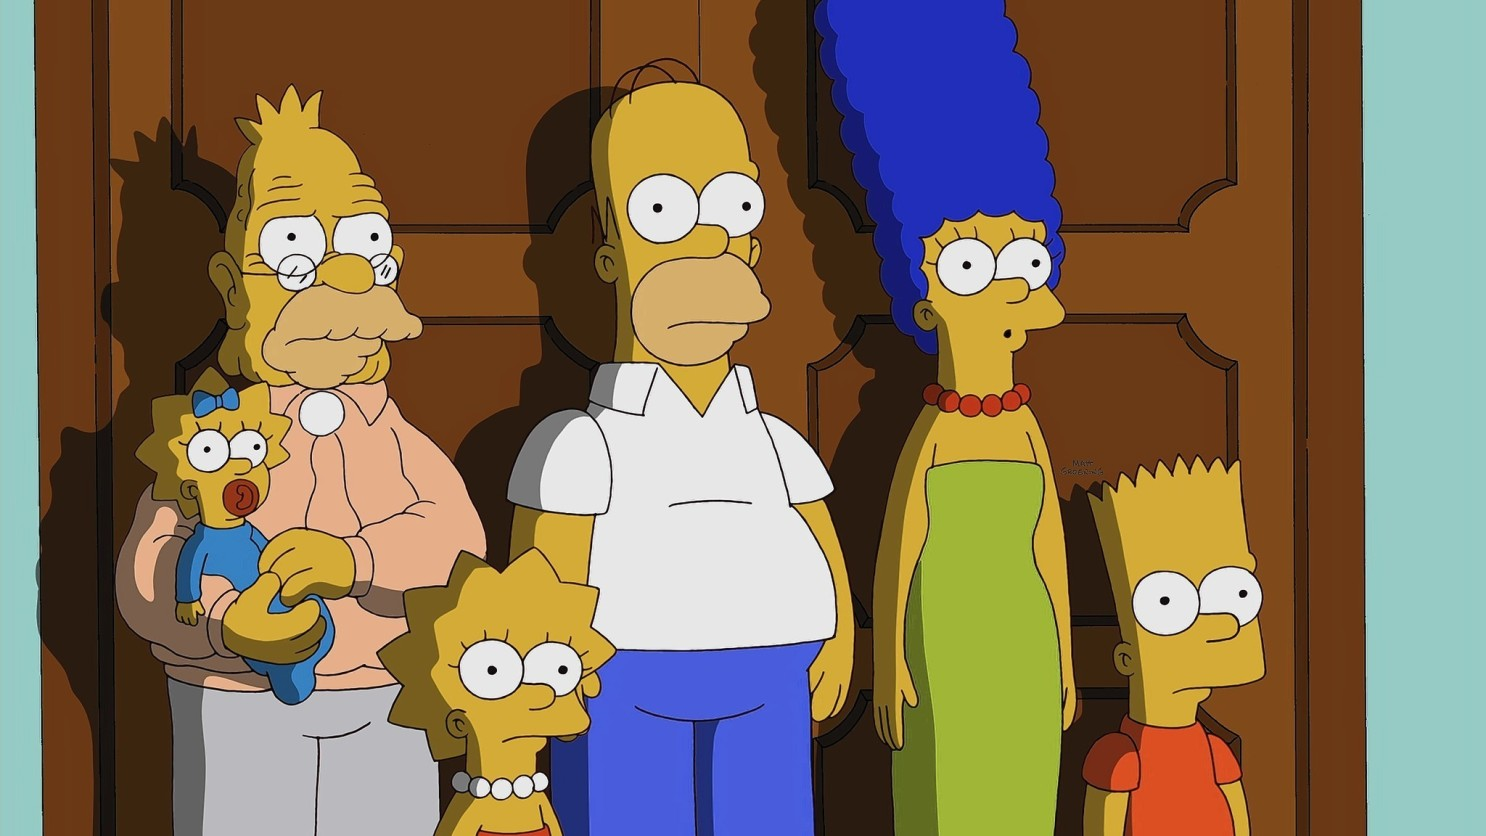 Did The Simpsons Predict Coronavirus and Murder Hornets Years Before it Happened?